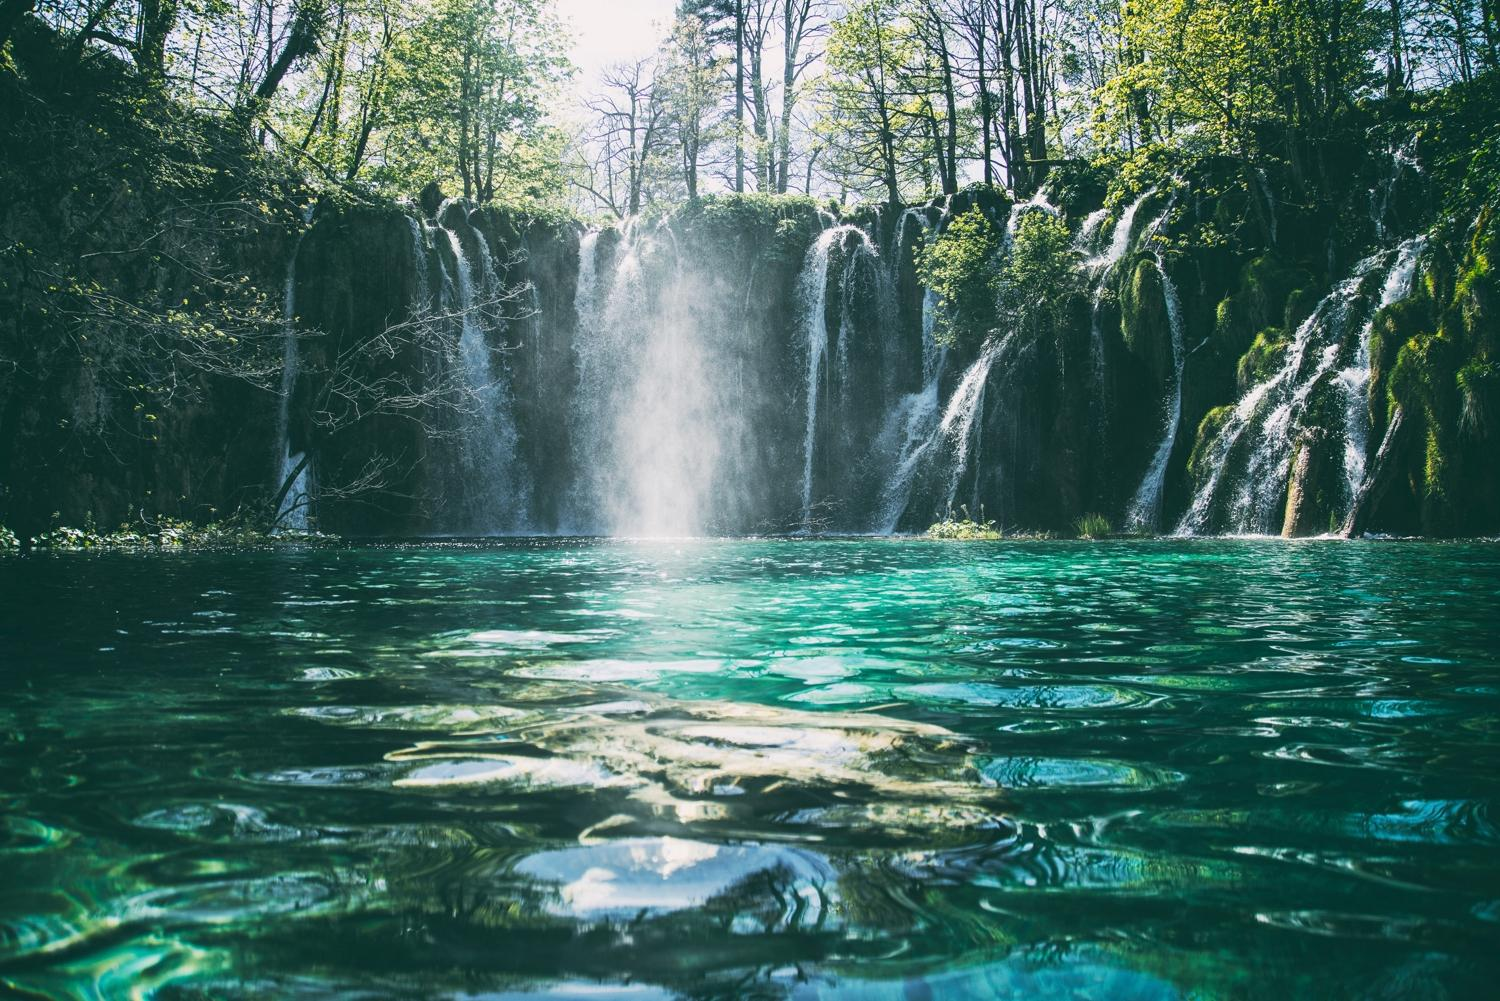 Breathtaking views and untouched nature: Visiting National park Plitvice lakes